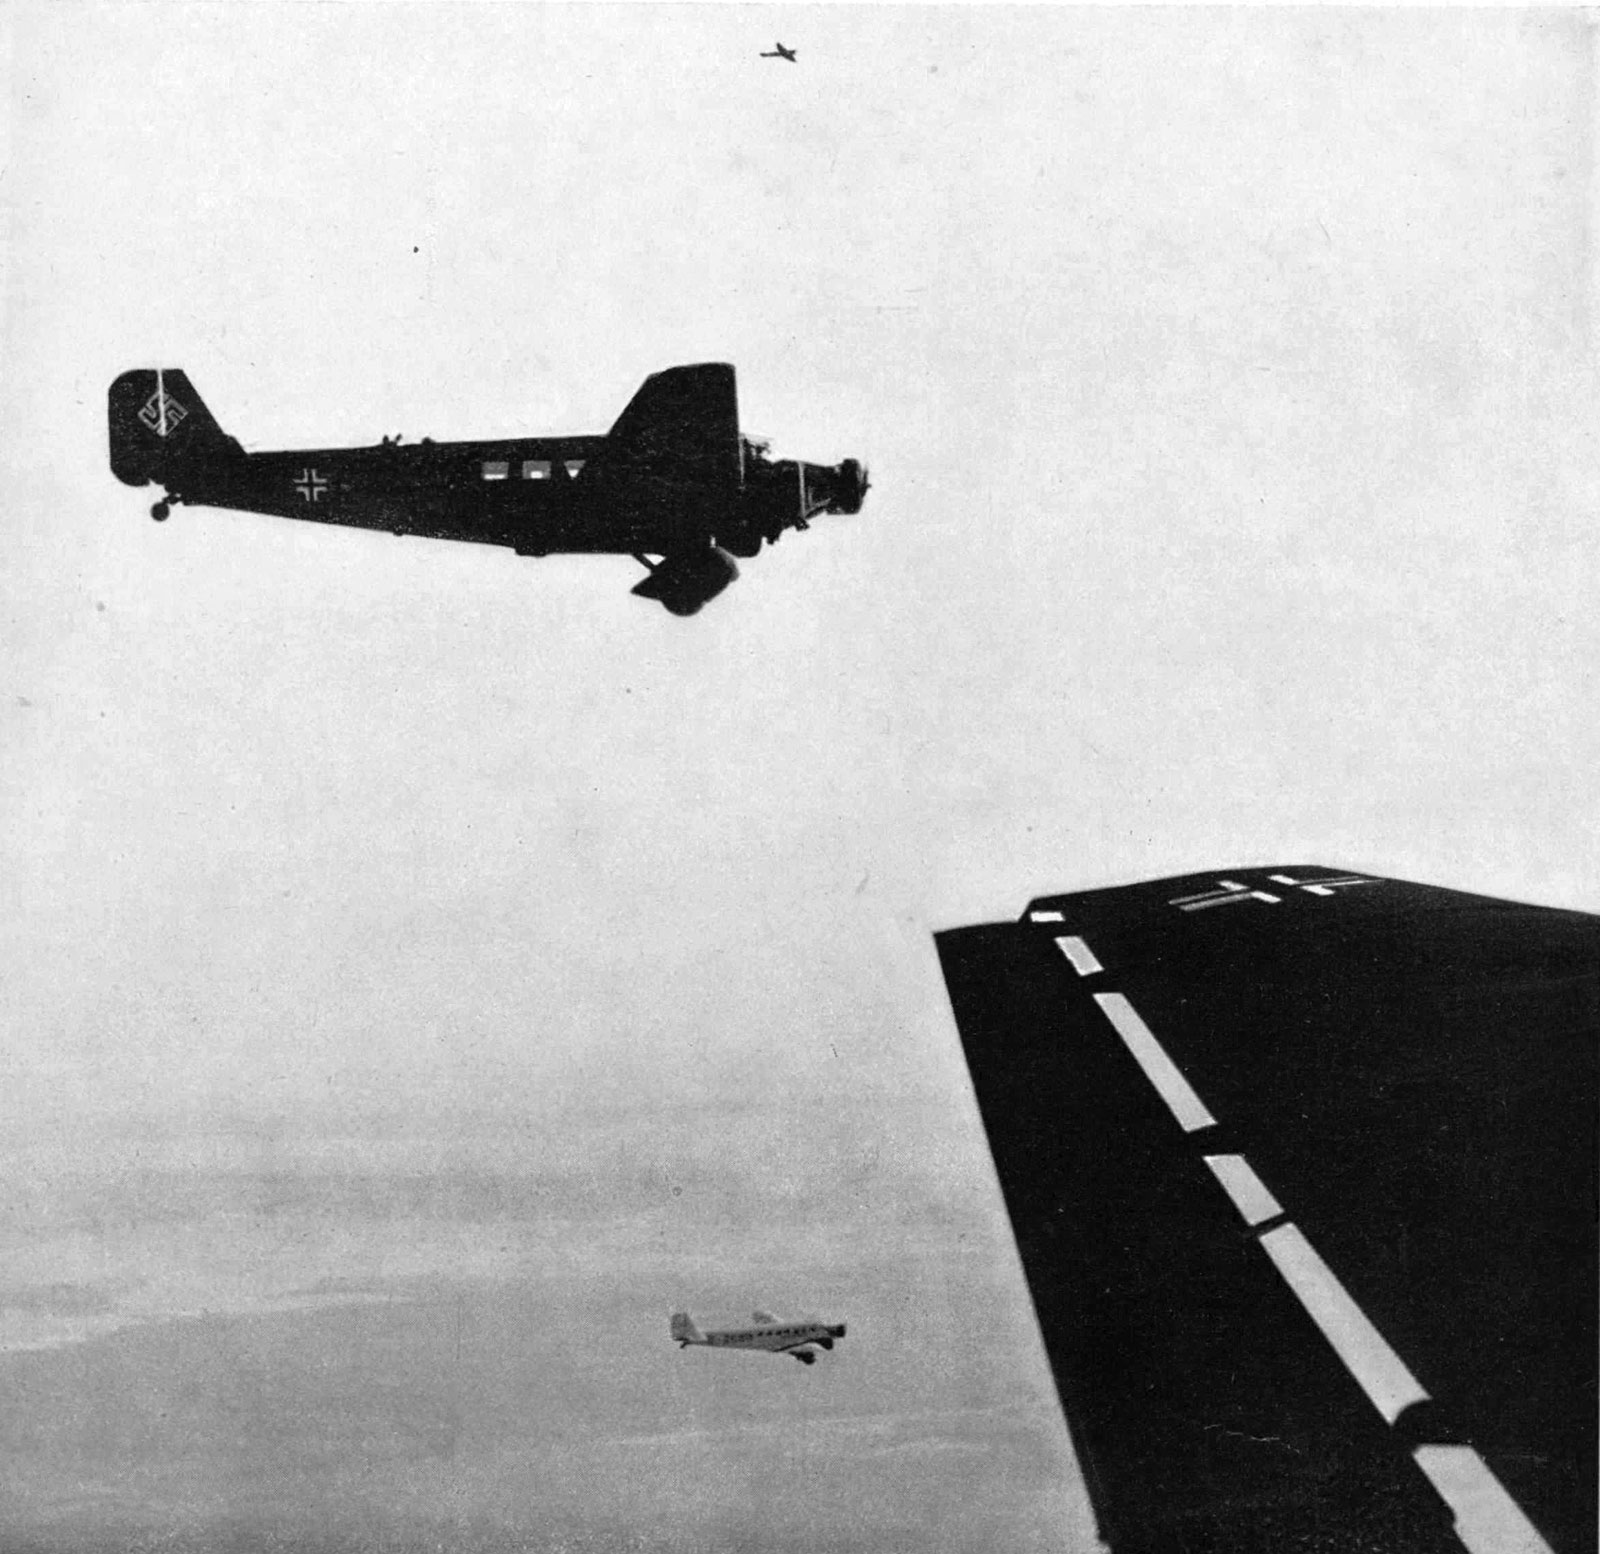 Invasion Of Poland Junkers Ju 52 Transporting High Ranking